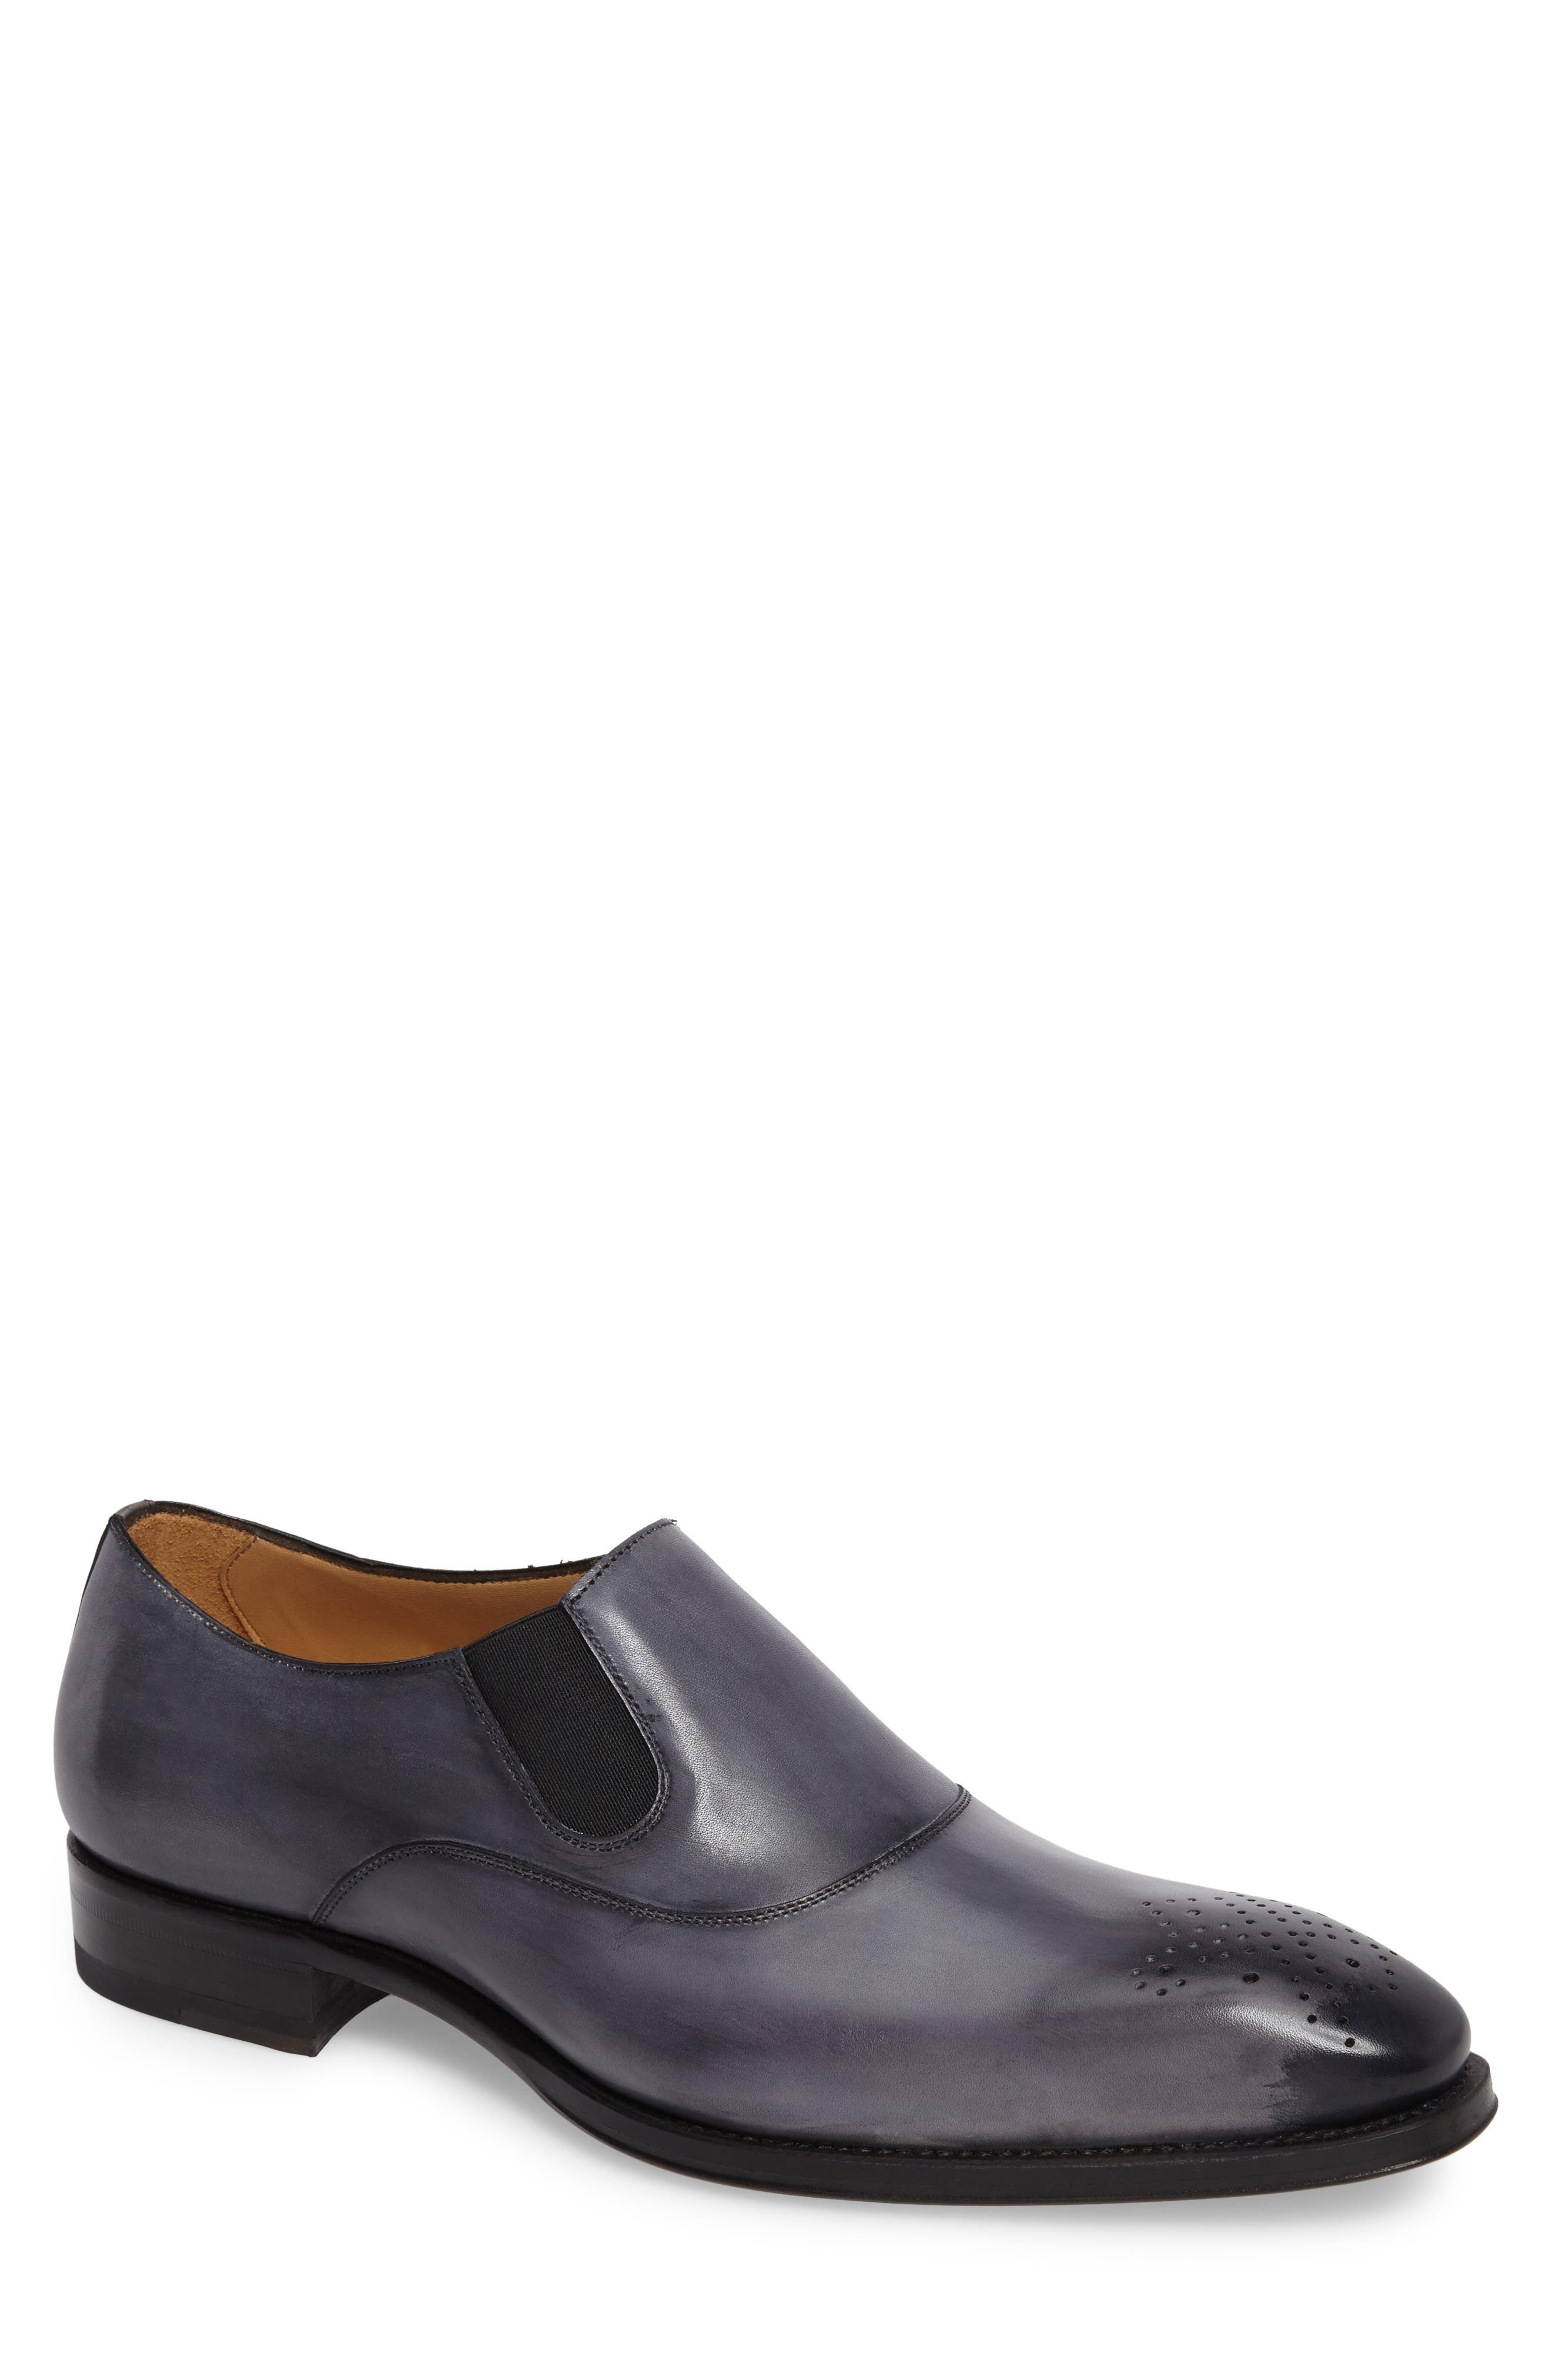 Posadas Venetian Loafer,                             Main thumbnail 1, color,                             Grey Leather